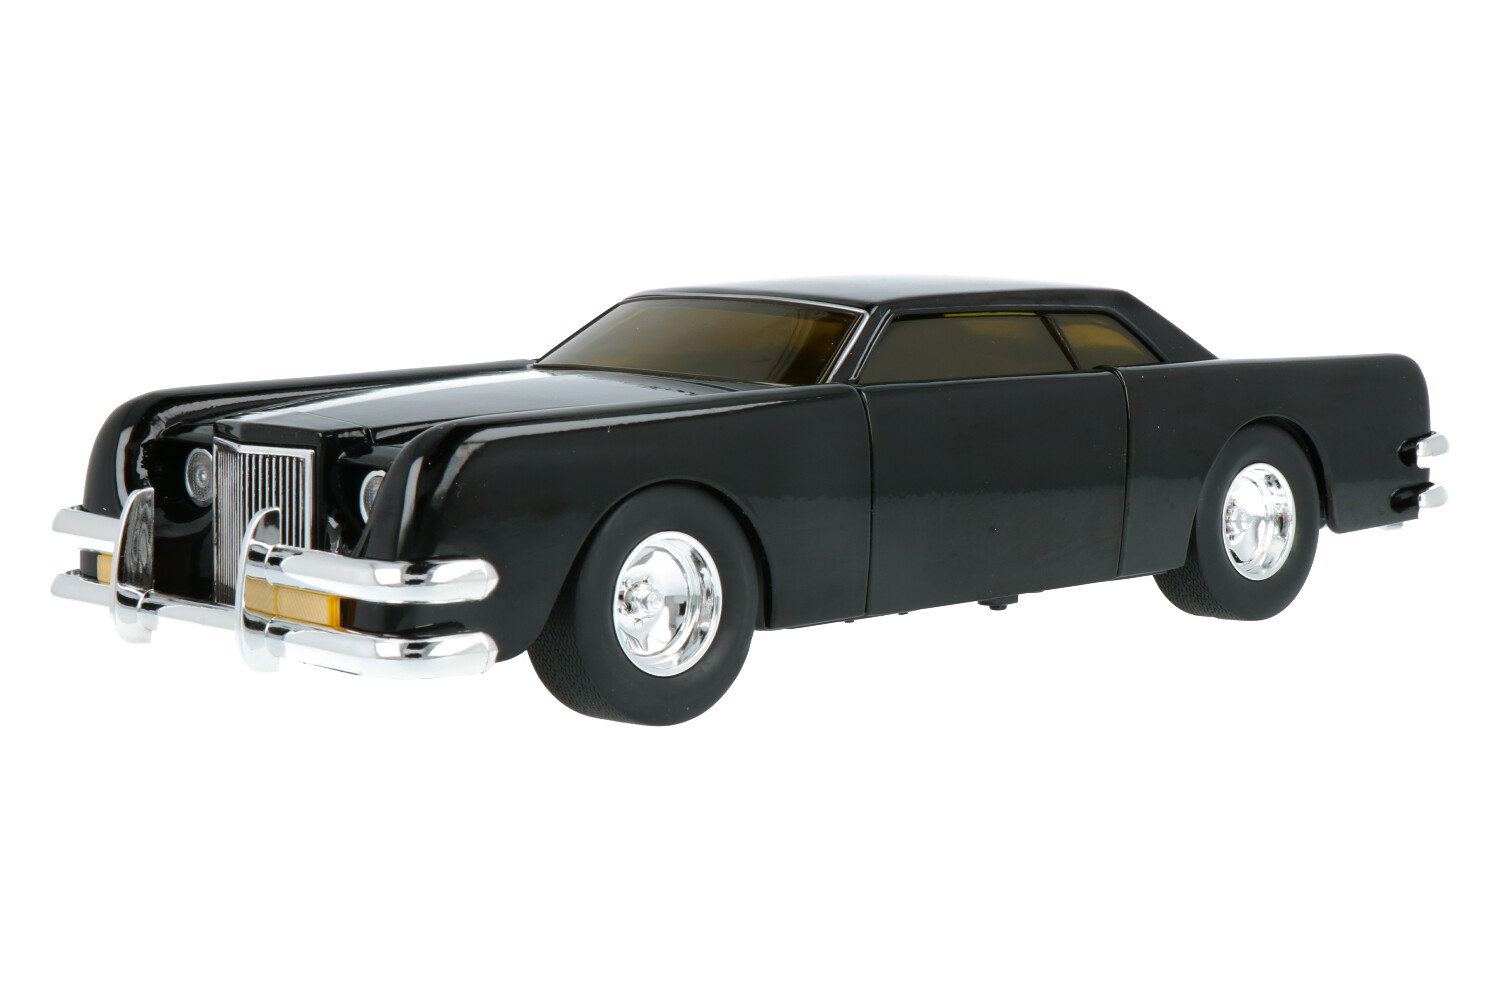 Lincoln The Barris Car (Designed by George Barris) - Modelauto schaal 1:18